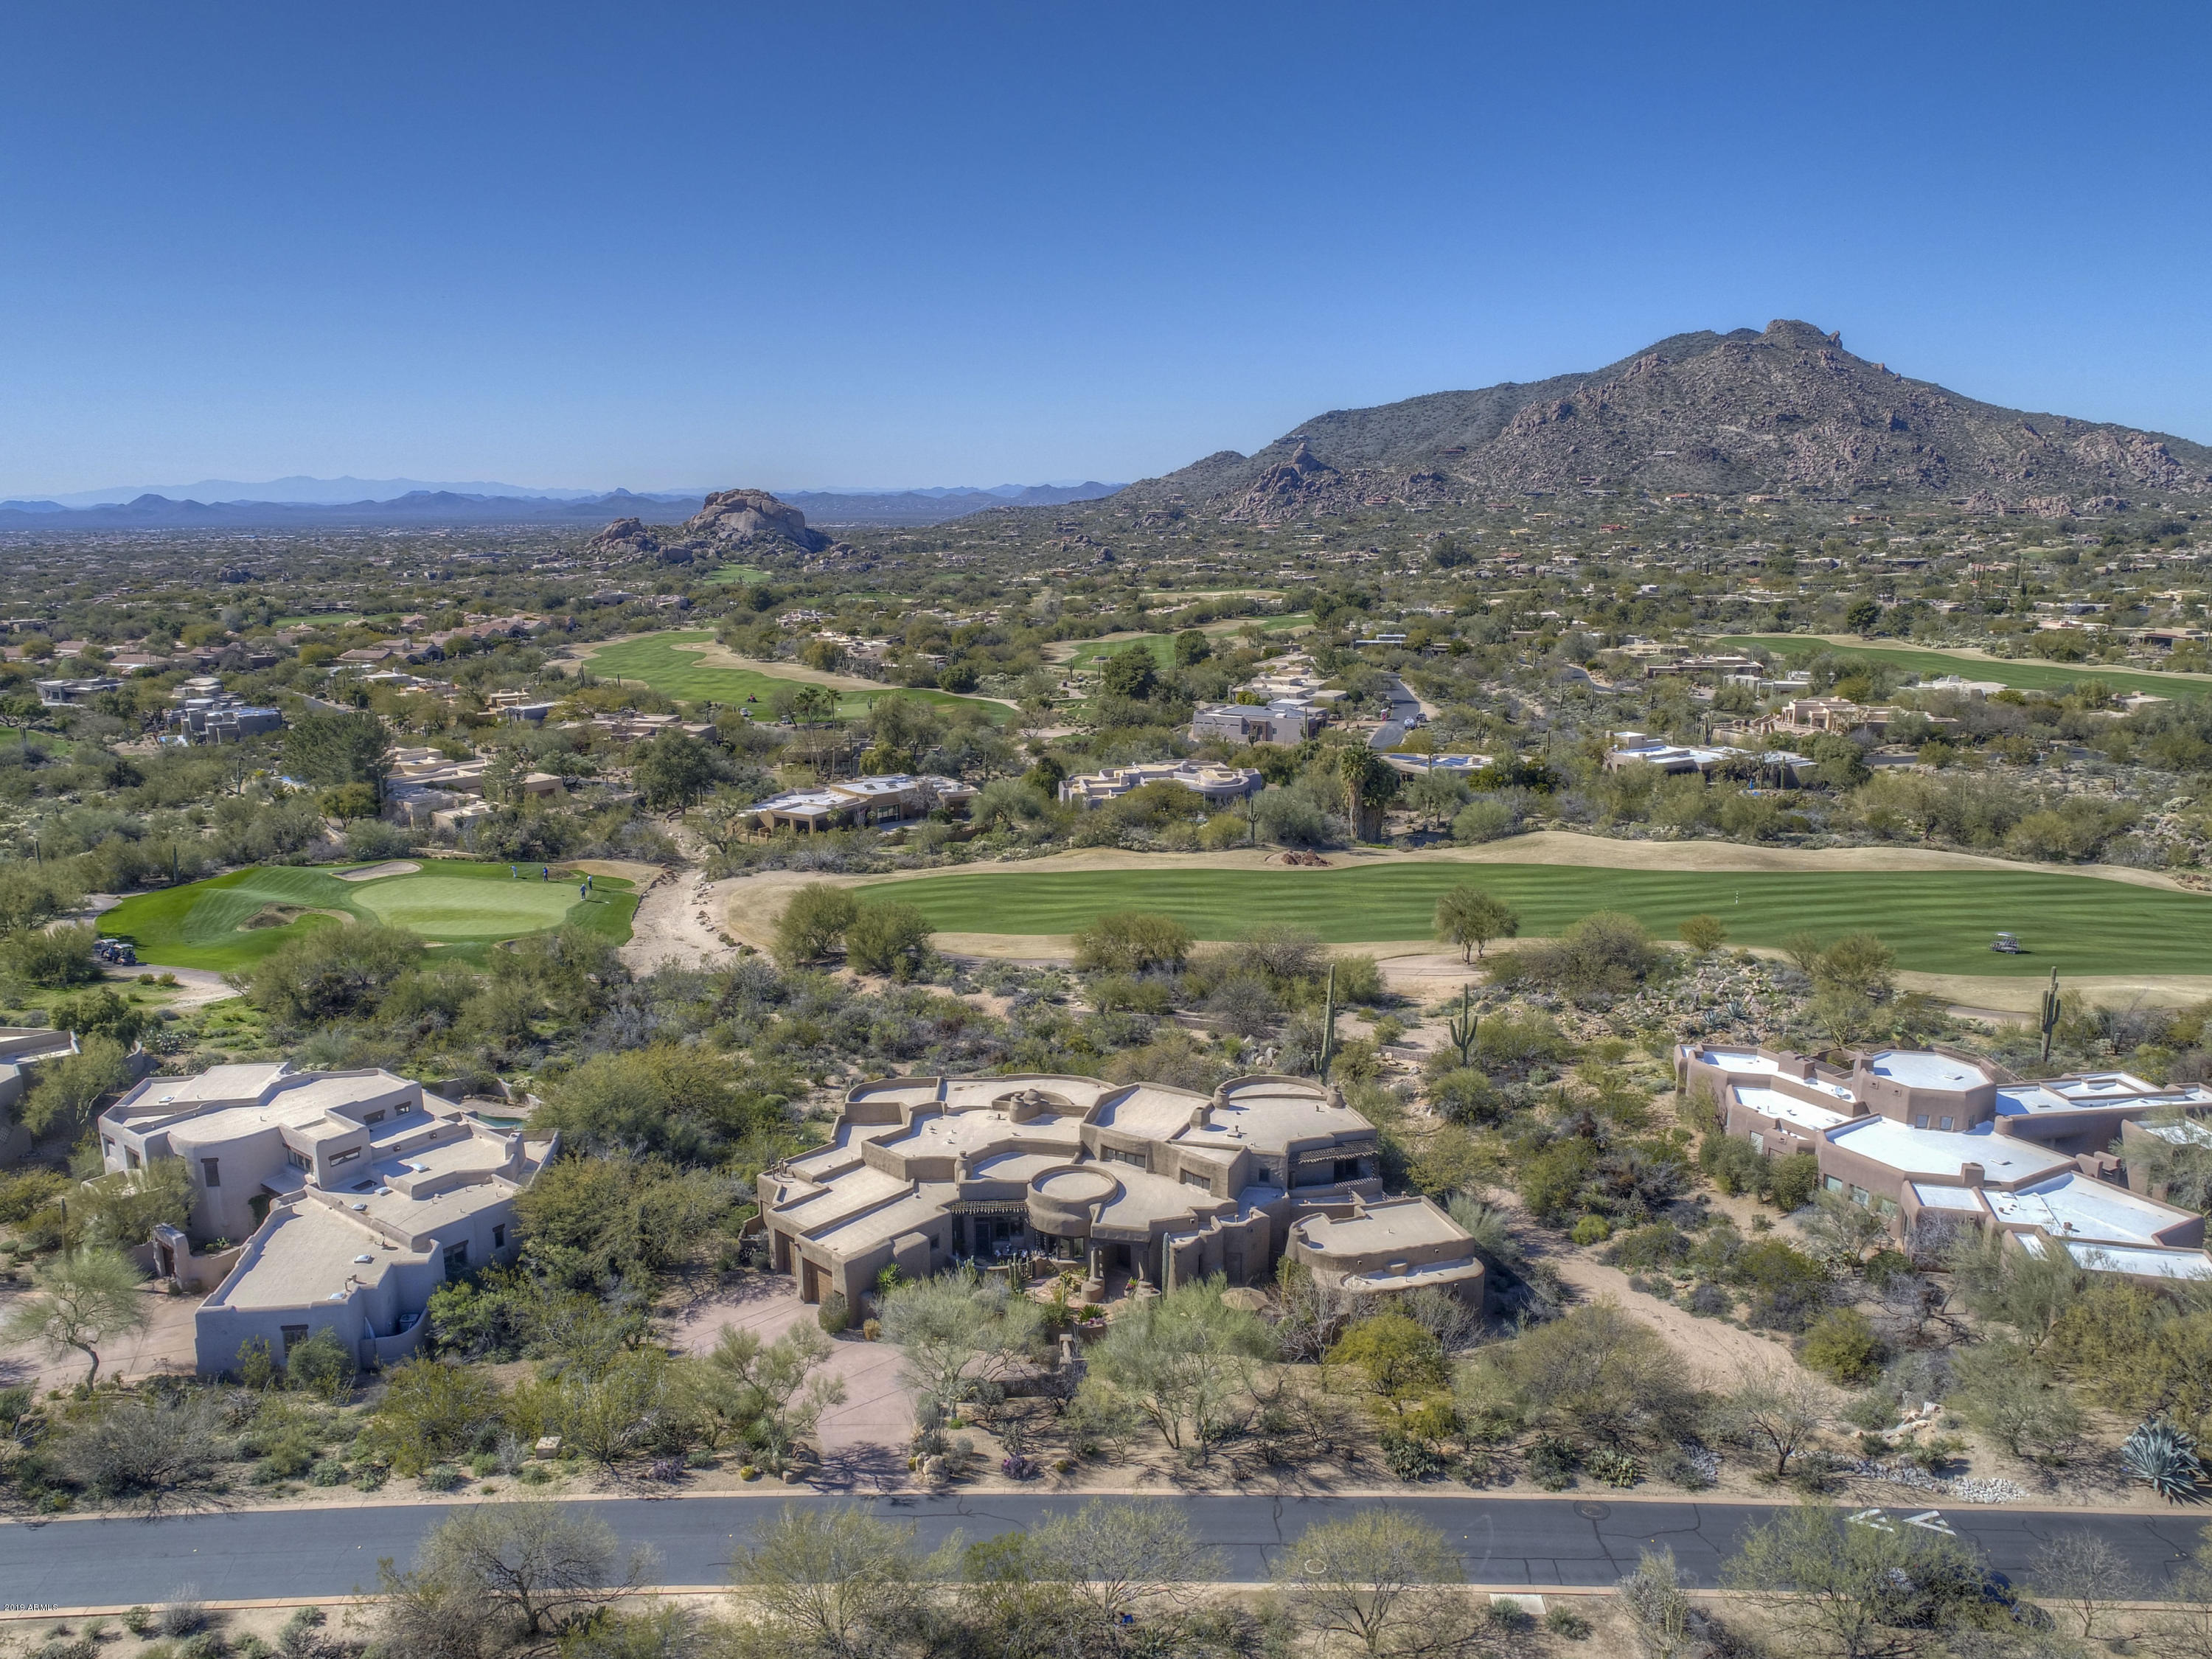 MLS 5928623 35056 N INDIAN CAMP Trail, Scottsdale, AZ 85266 Scottsdale AZ The Boulders